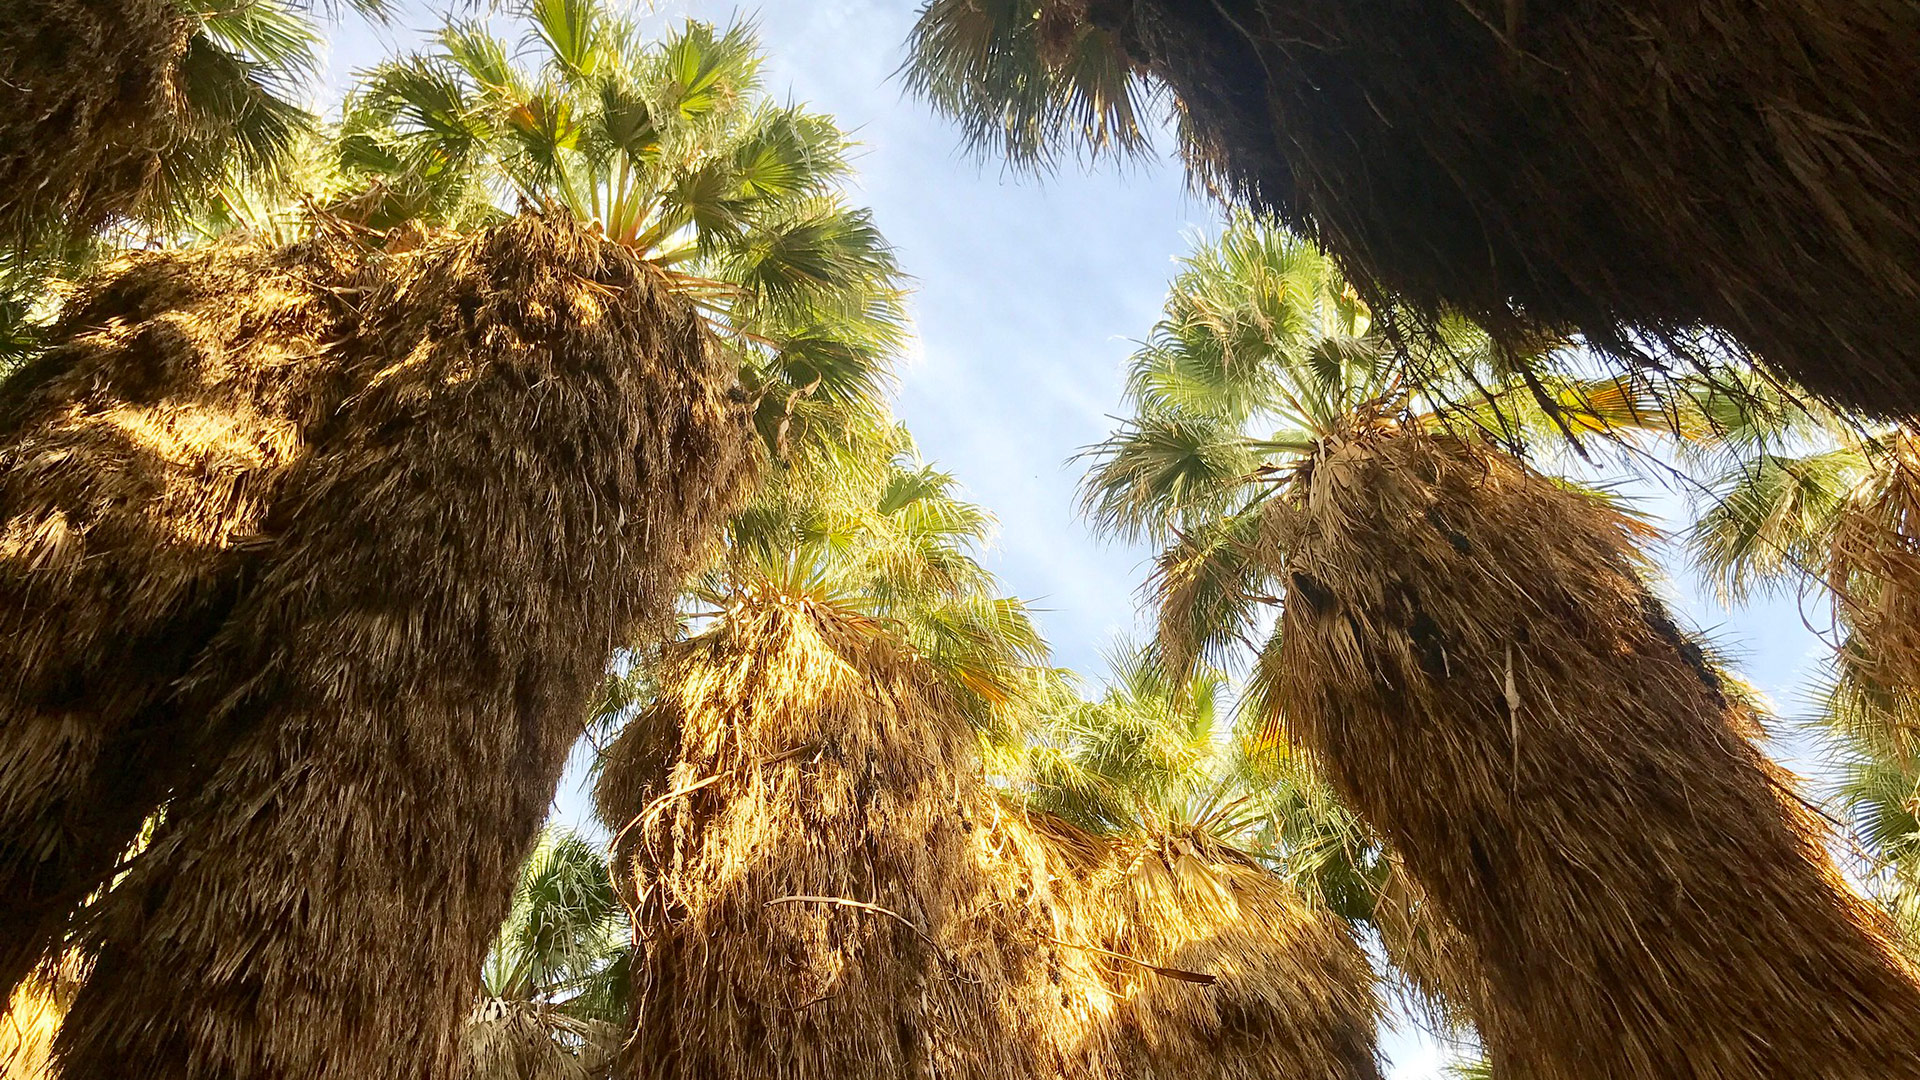 Looking up at palm trees at Thousand Palms Oasis